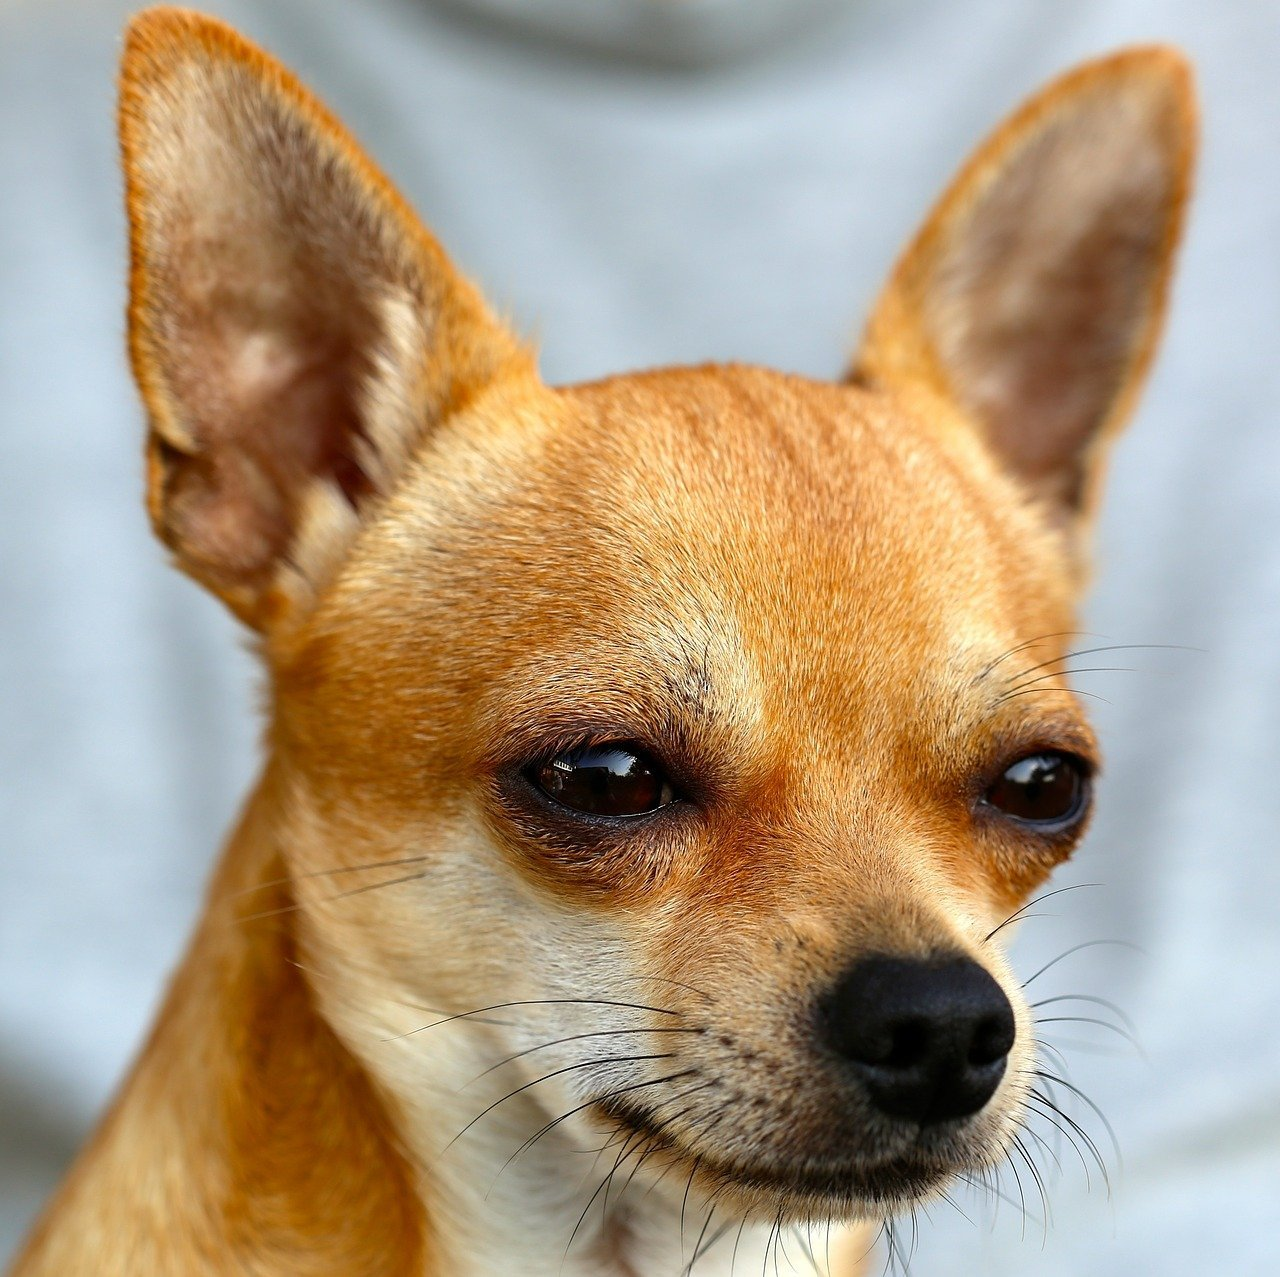 A close-up of a Chihuahua with its ears standing and a suspicious look on its face | Photo: Pixabay/a-mblomma